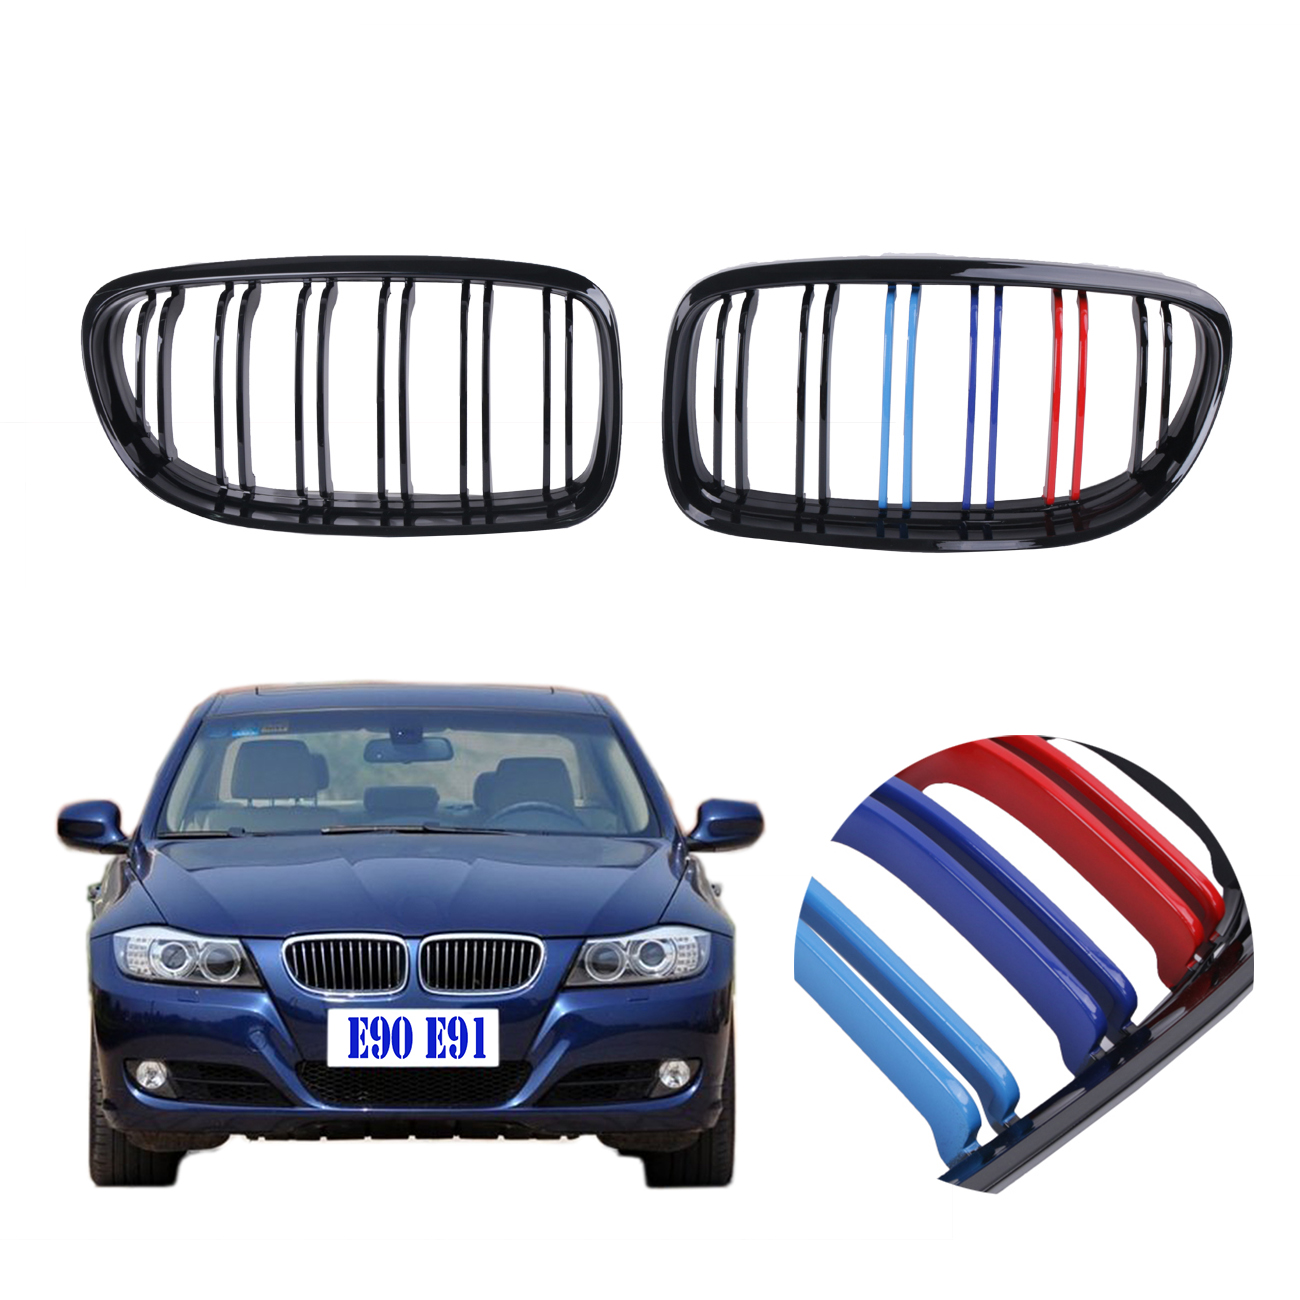 for bmw e90 e91 lci 318i 320i 320d 328i 335i 2009 2010 2011 glossy black m color front kidney grilles double line grill p461 in racing grills from  [ 1300 x 1300 Pixel ]